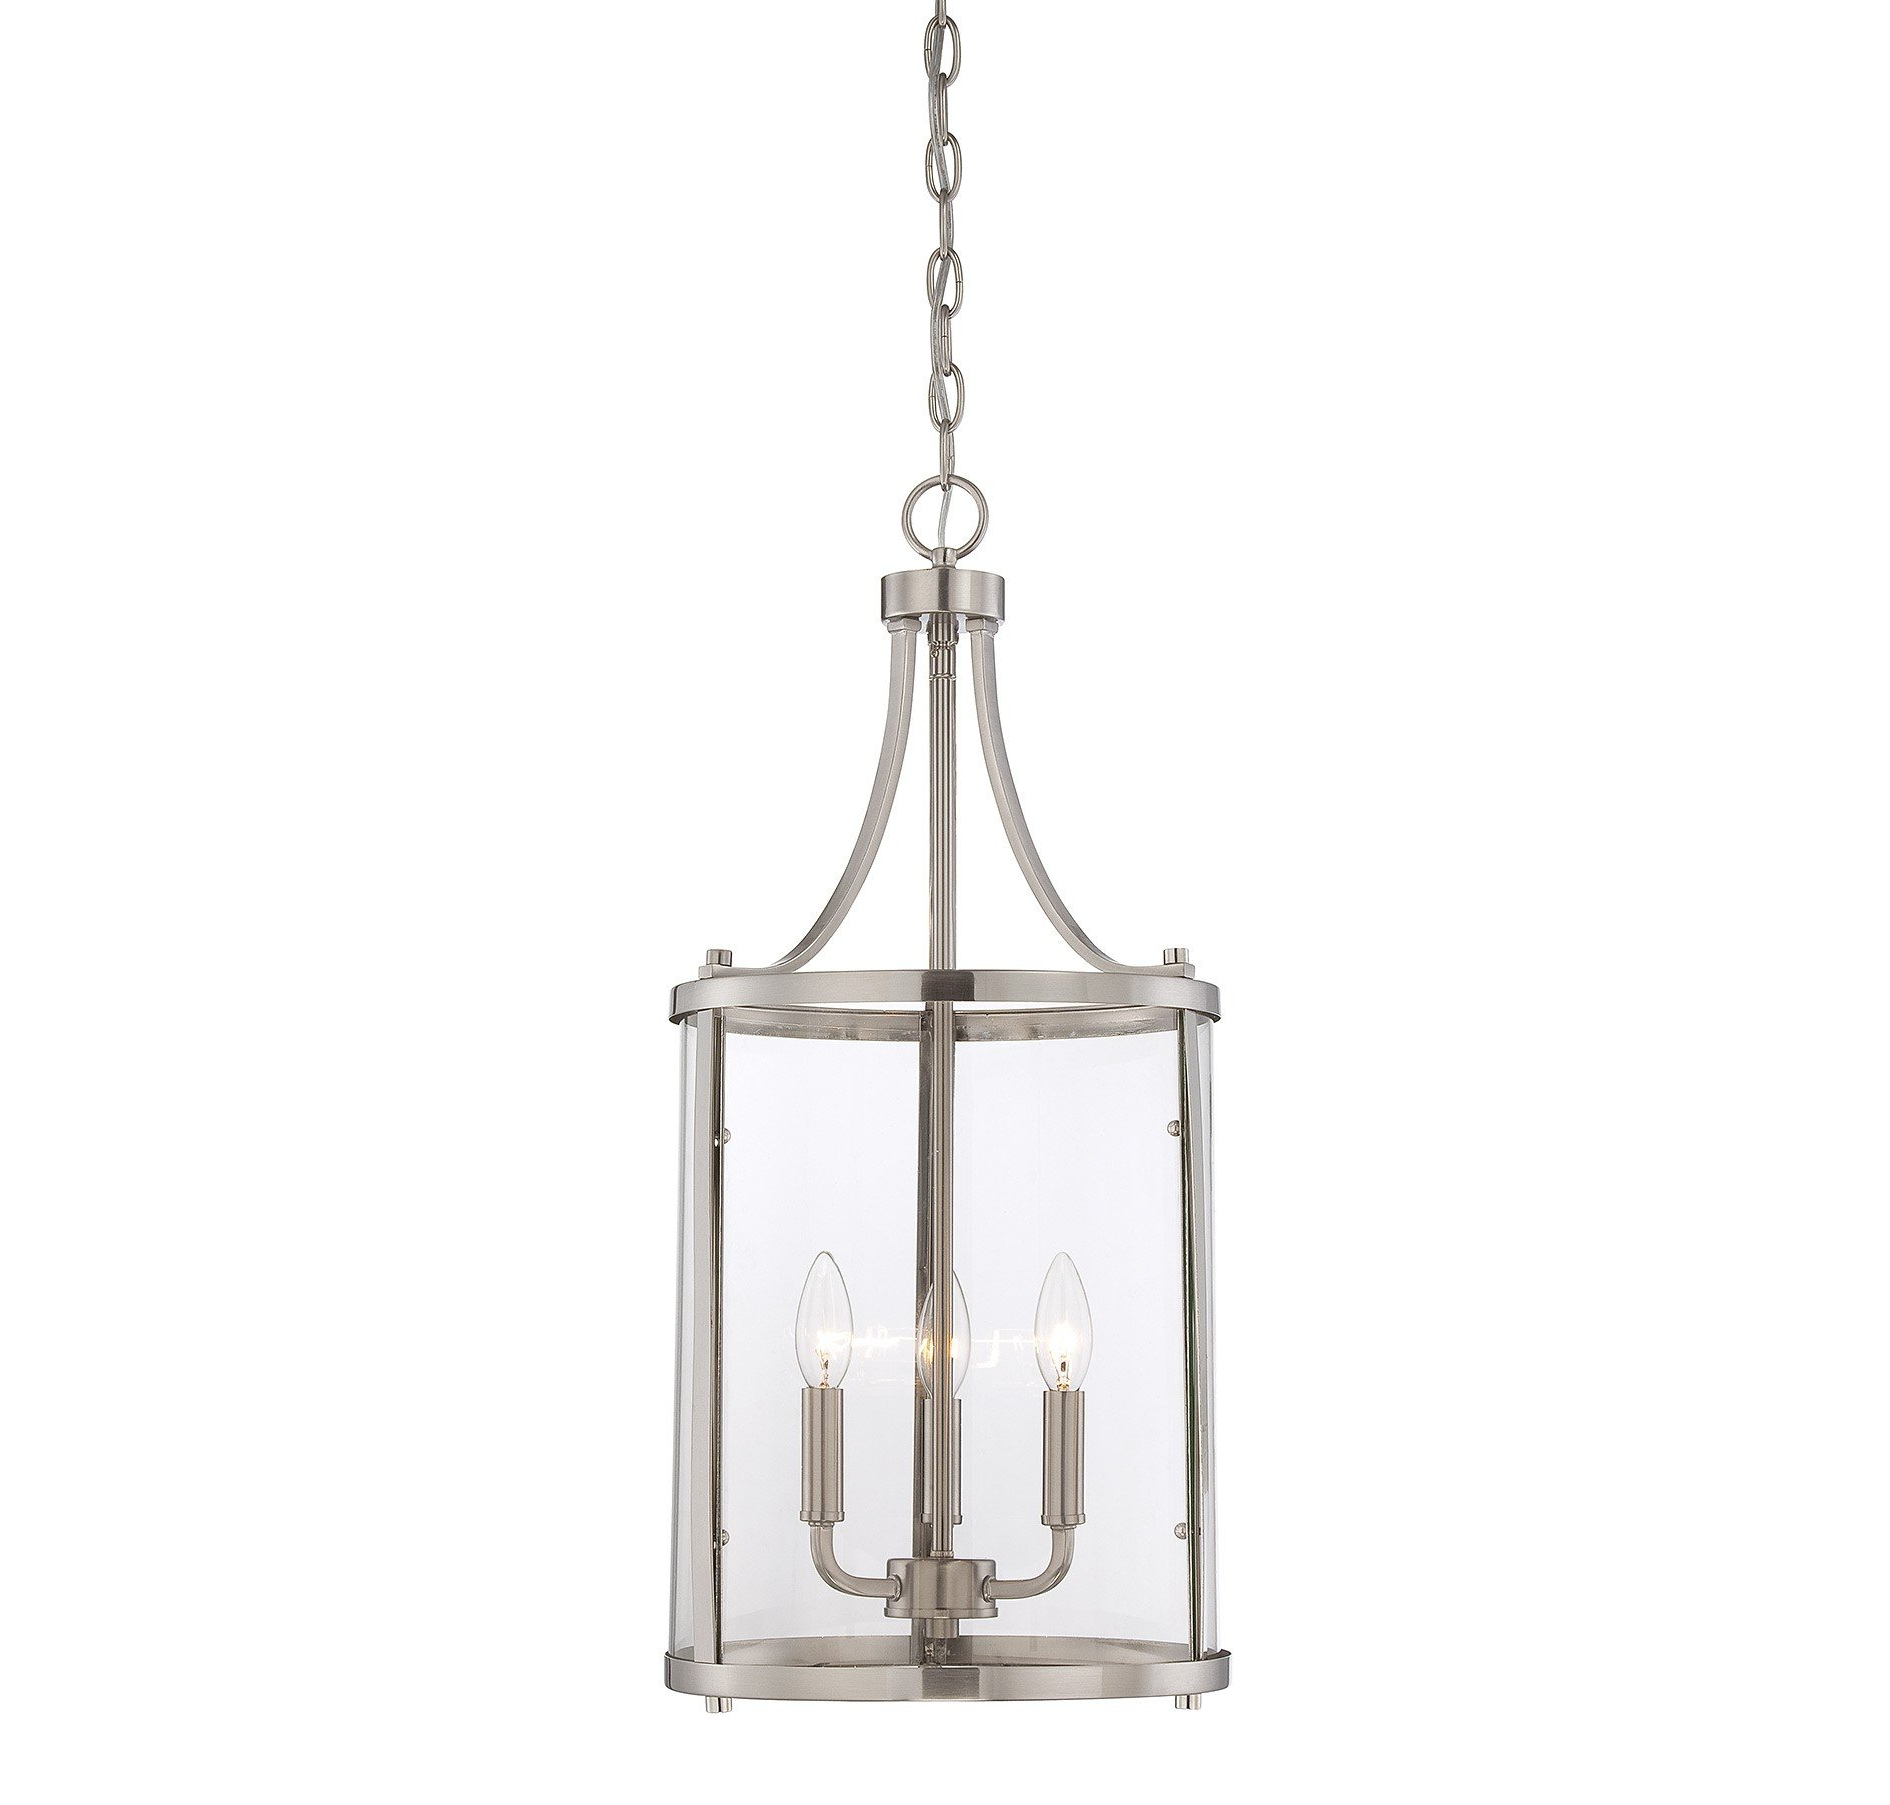 Best And Newest Gabriella 3 Light Lantern Chandeliers Regarding 3 Light Lantern Cylinder Pendant (View 3 of 20)